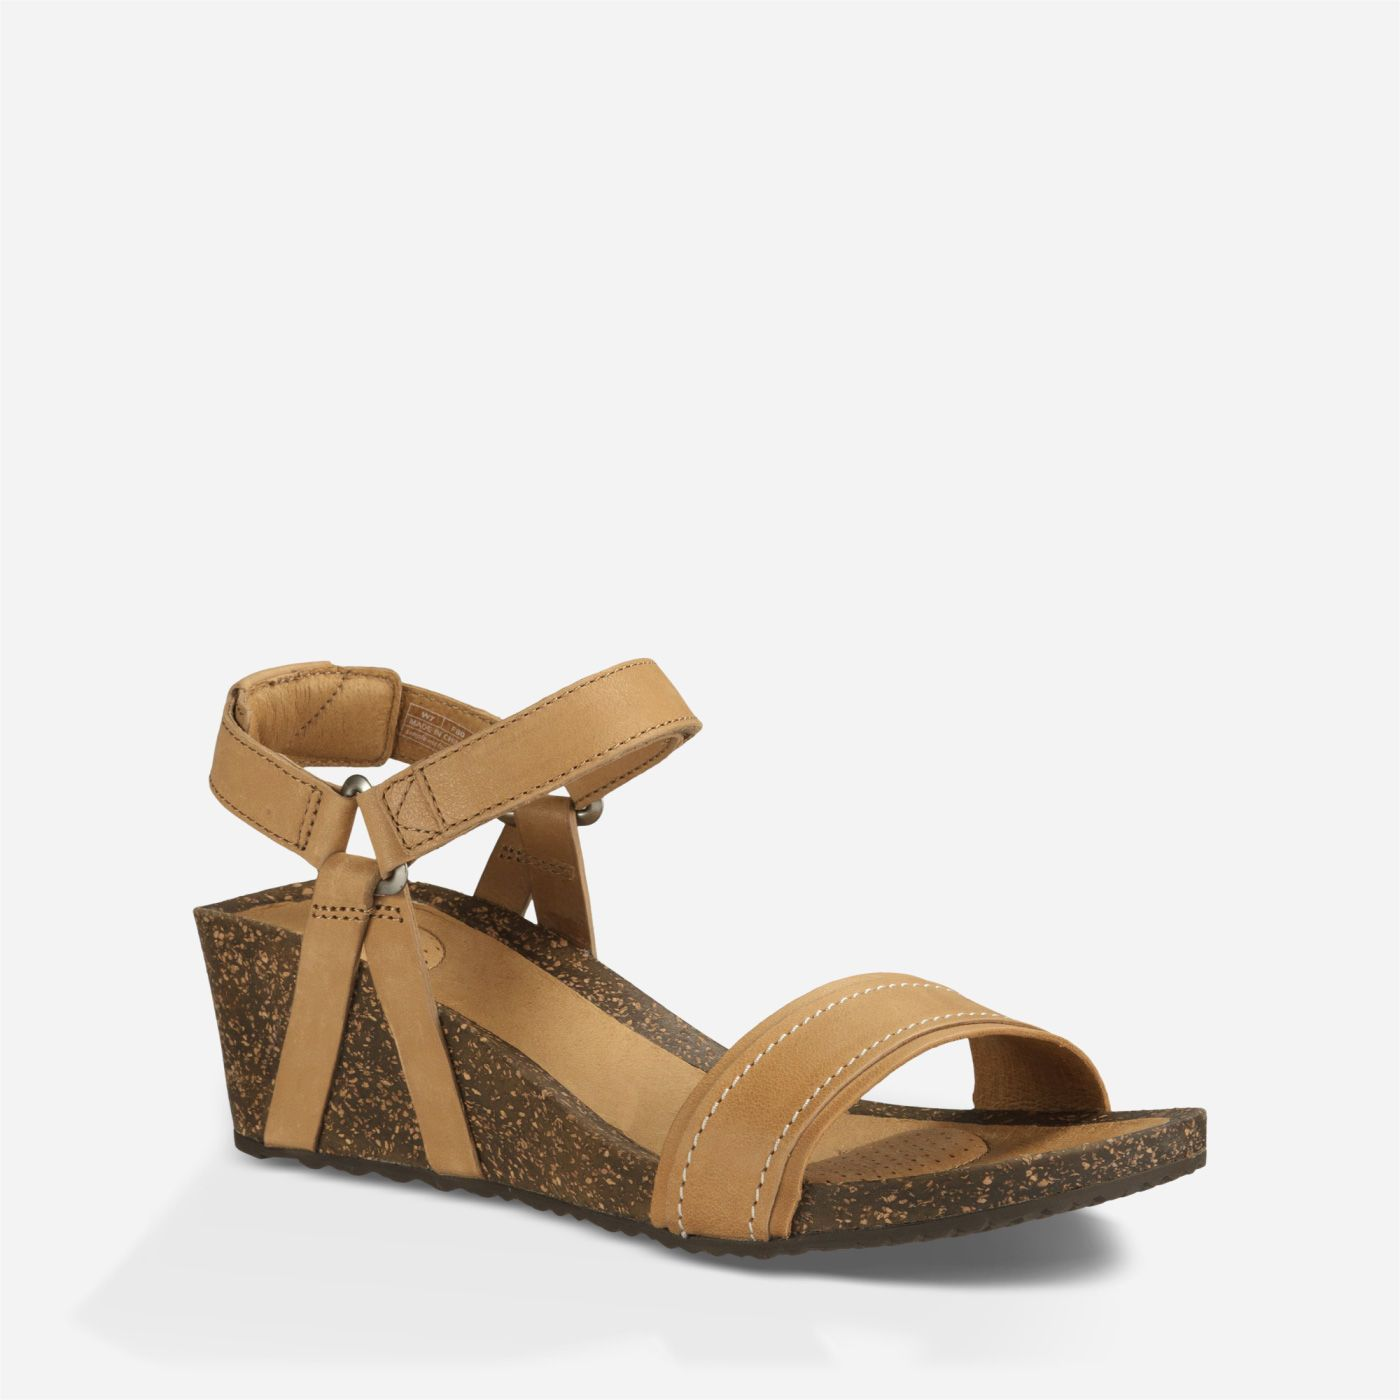 837474f10f8 Original Teva® Ysidro Stitch Wedge Sandals for Women on the official Teva®  website. Free standard delivery when you spend £40.